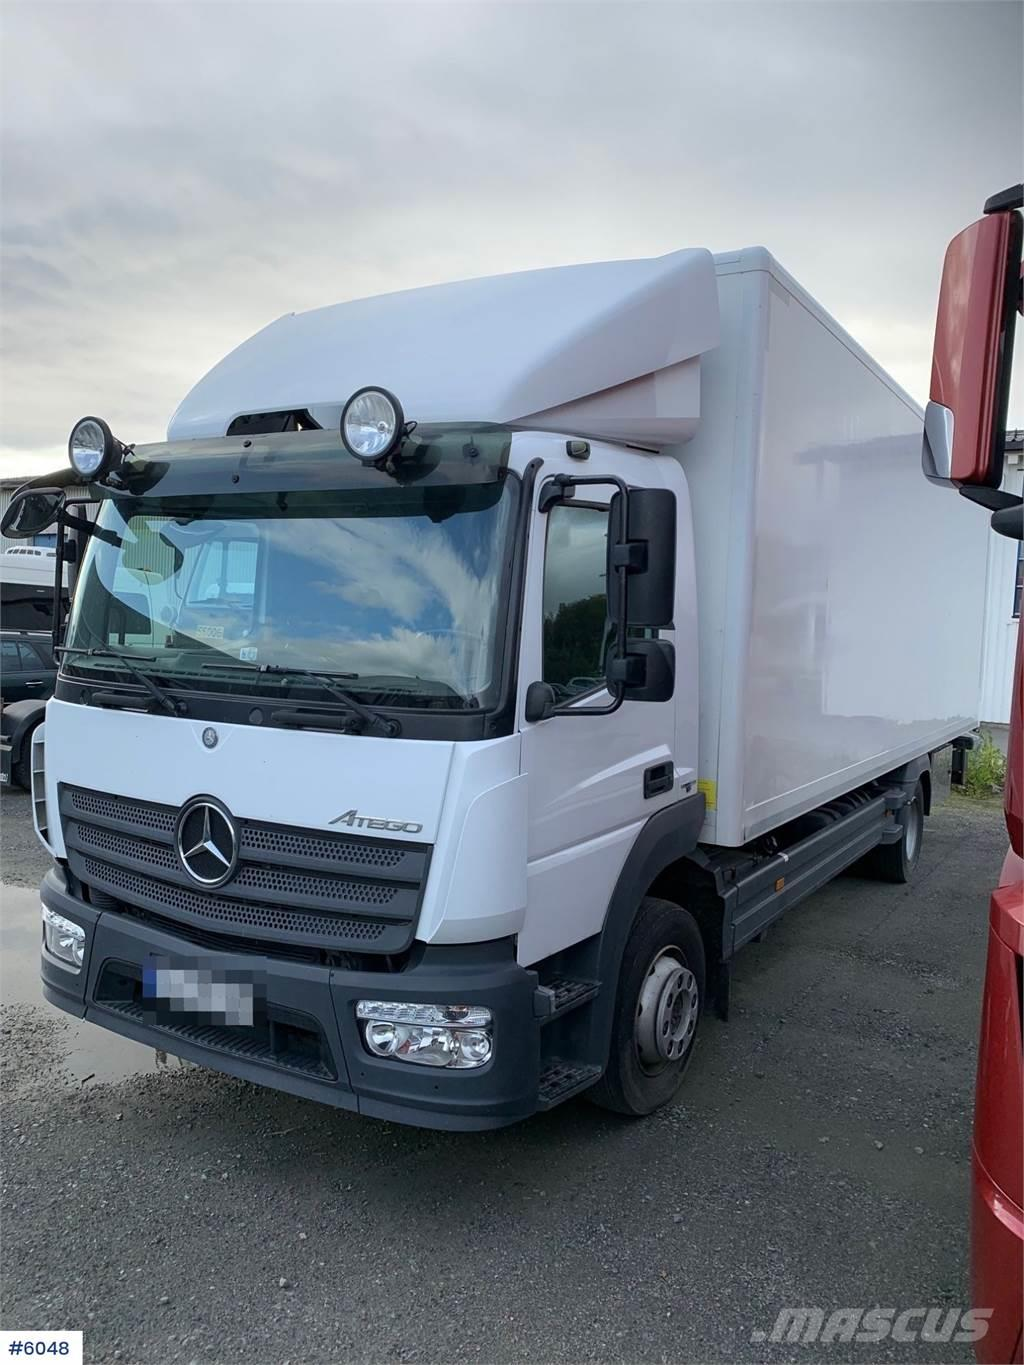 Mercedes-Benz Atego 1224L w / box and rear lifter